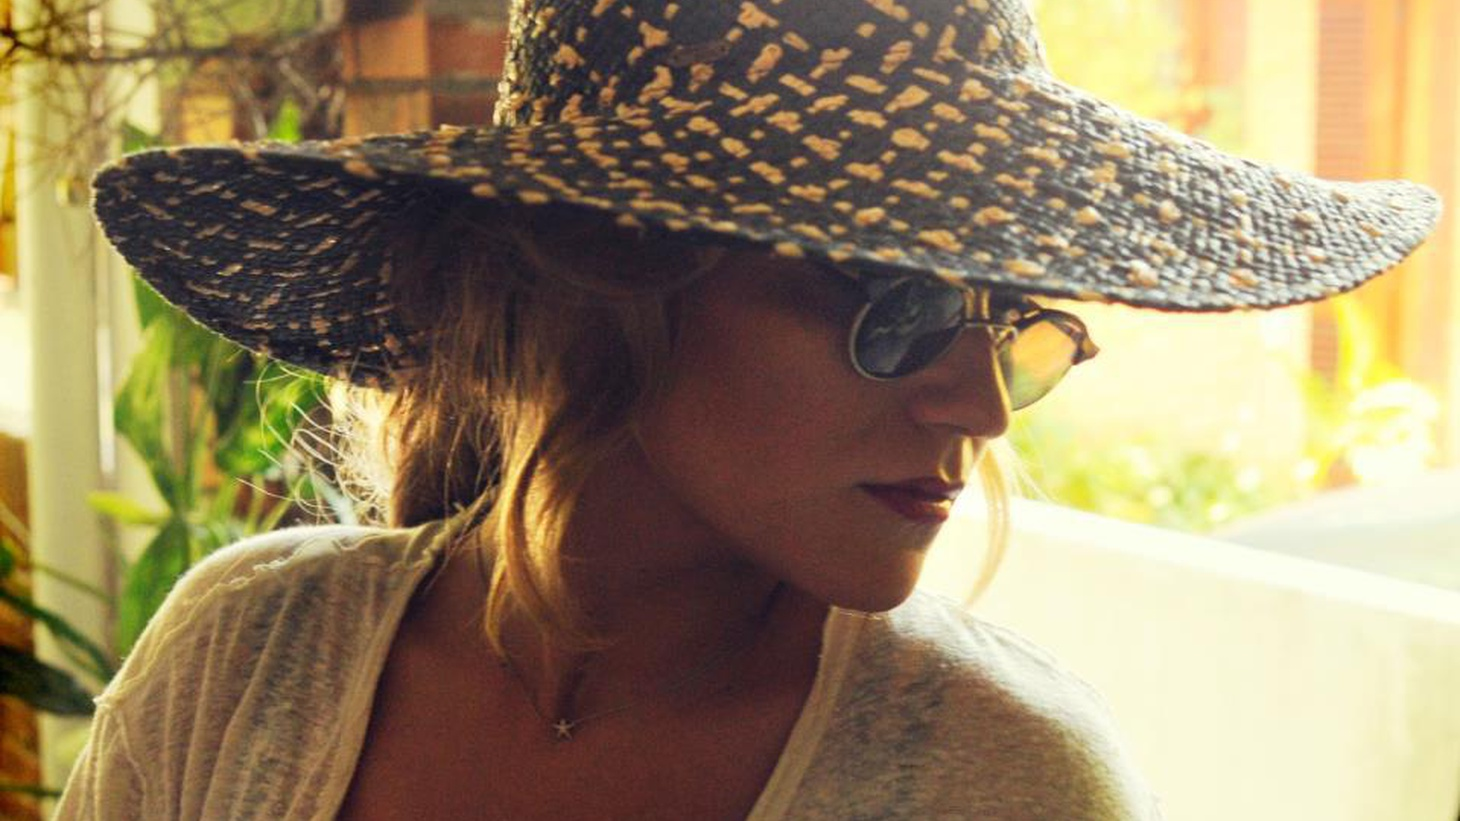 A young singer with an old soul, Melody Gardot's third release is a sultry mix of jazzy-tinged gypsy songs.